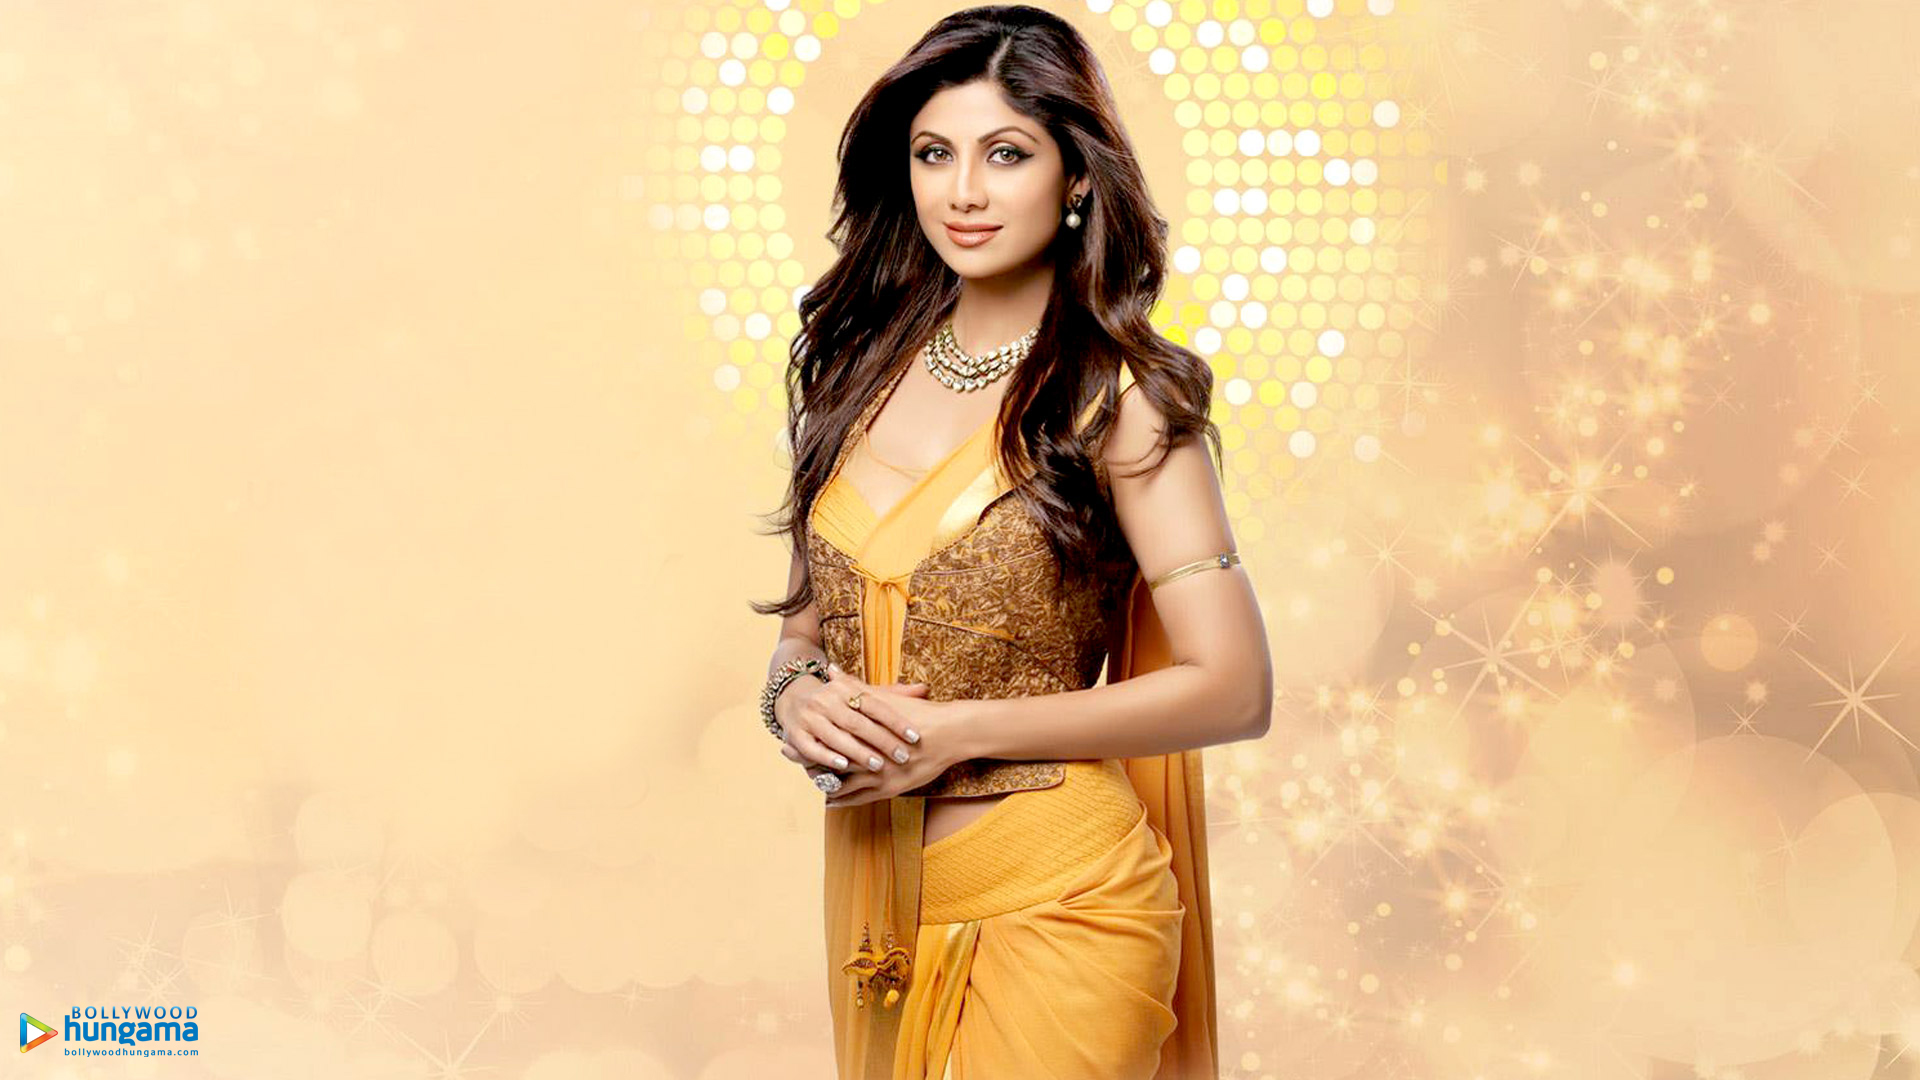 Shilpa shetty sexy wallpaper